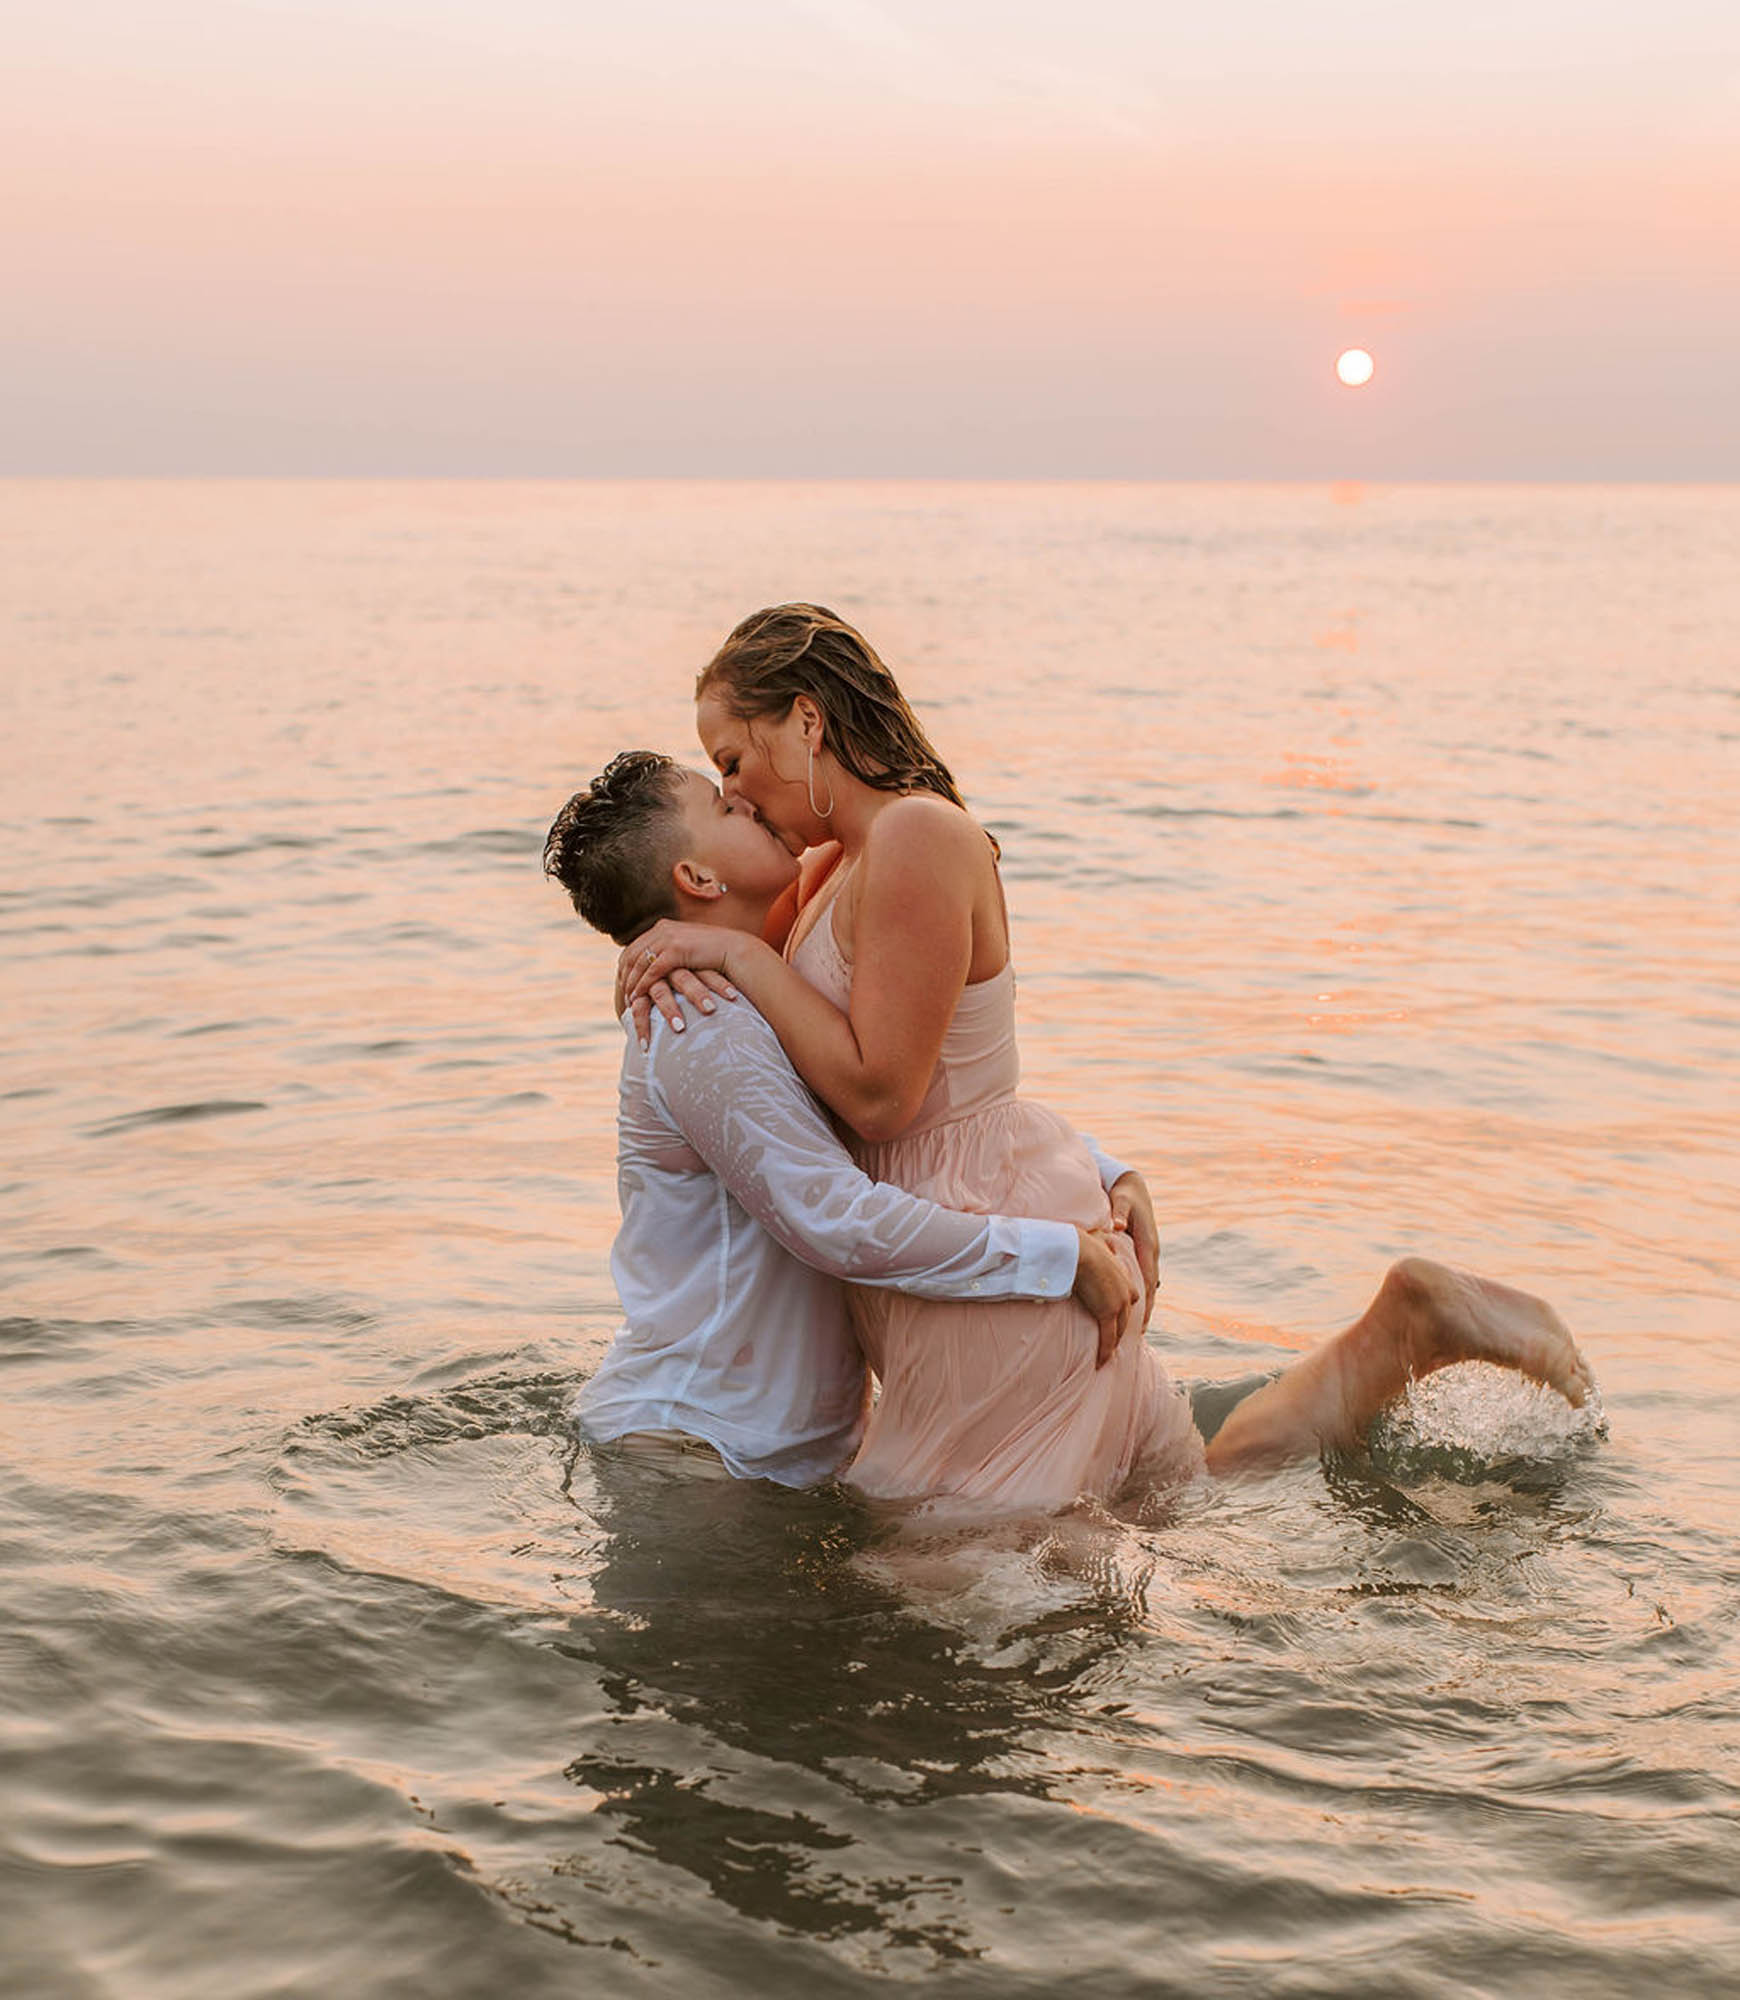 Michigan Same-Sex Enagement Photography - Dancing With Her - Engagement Photoshoot